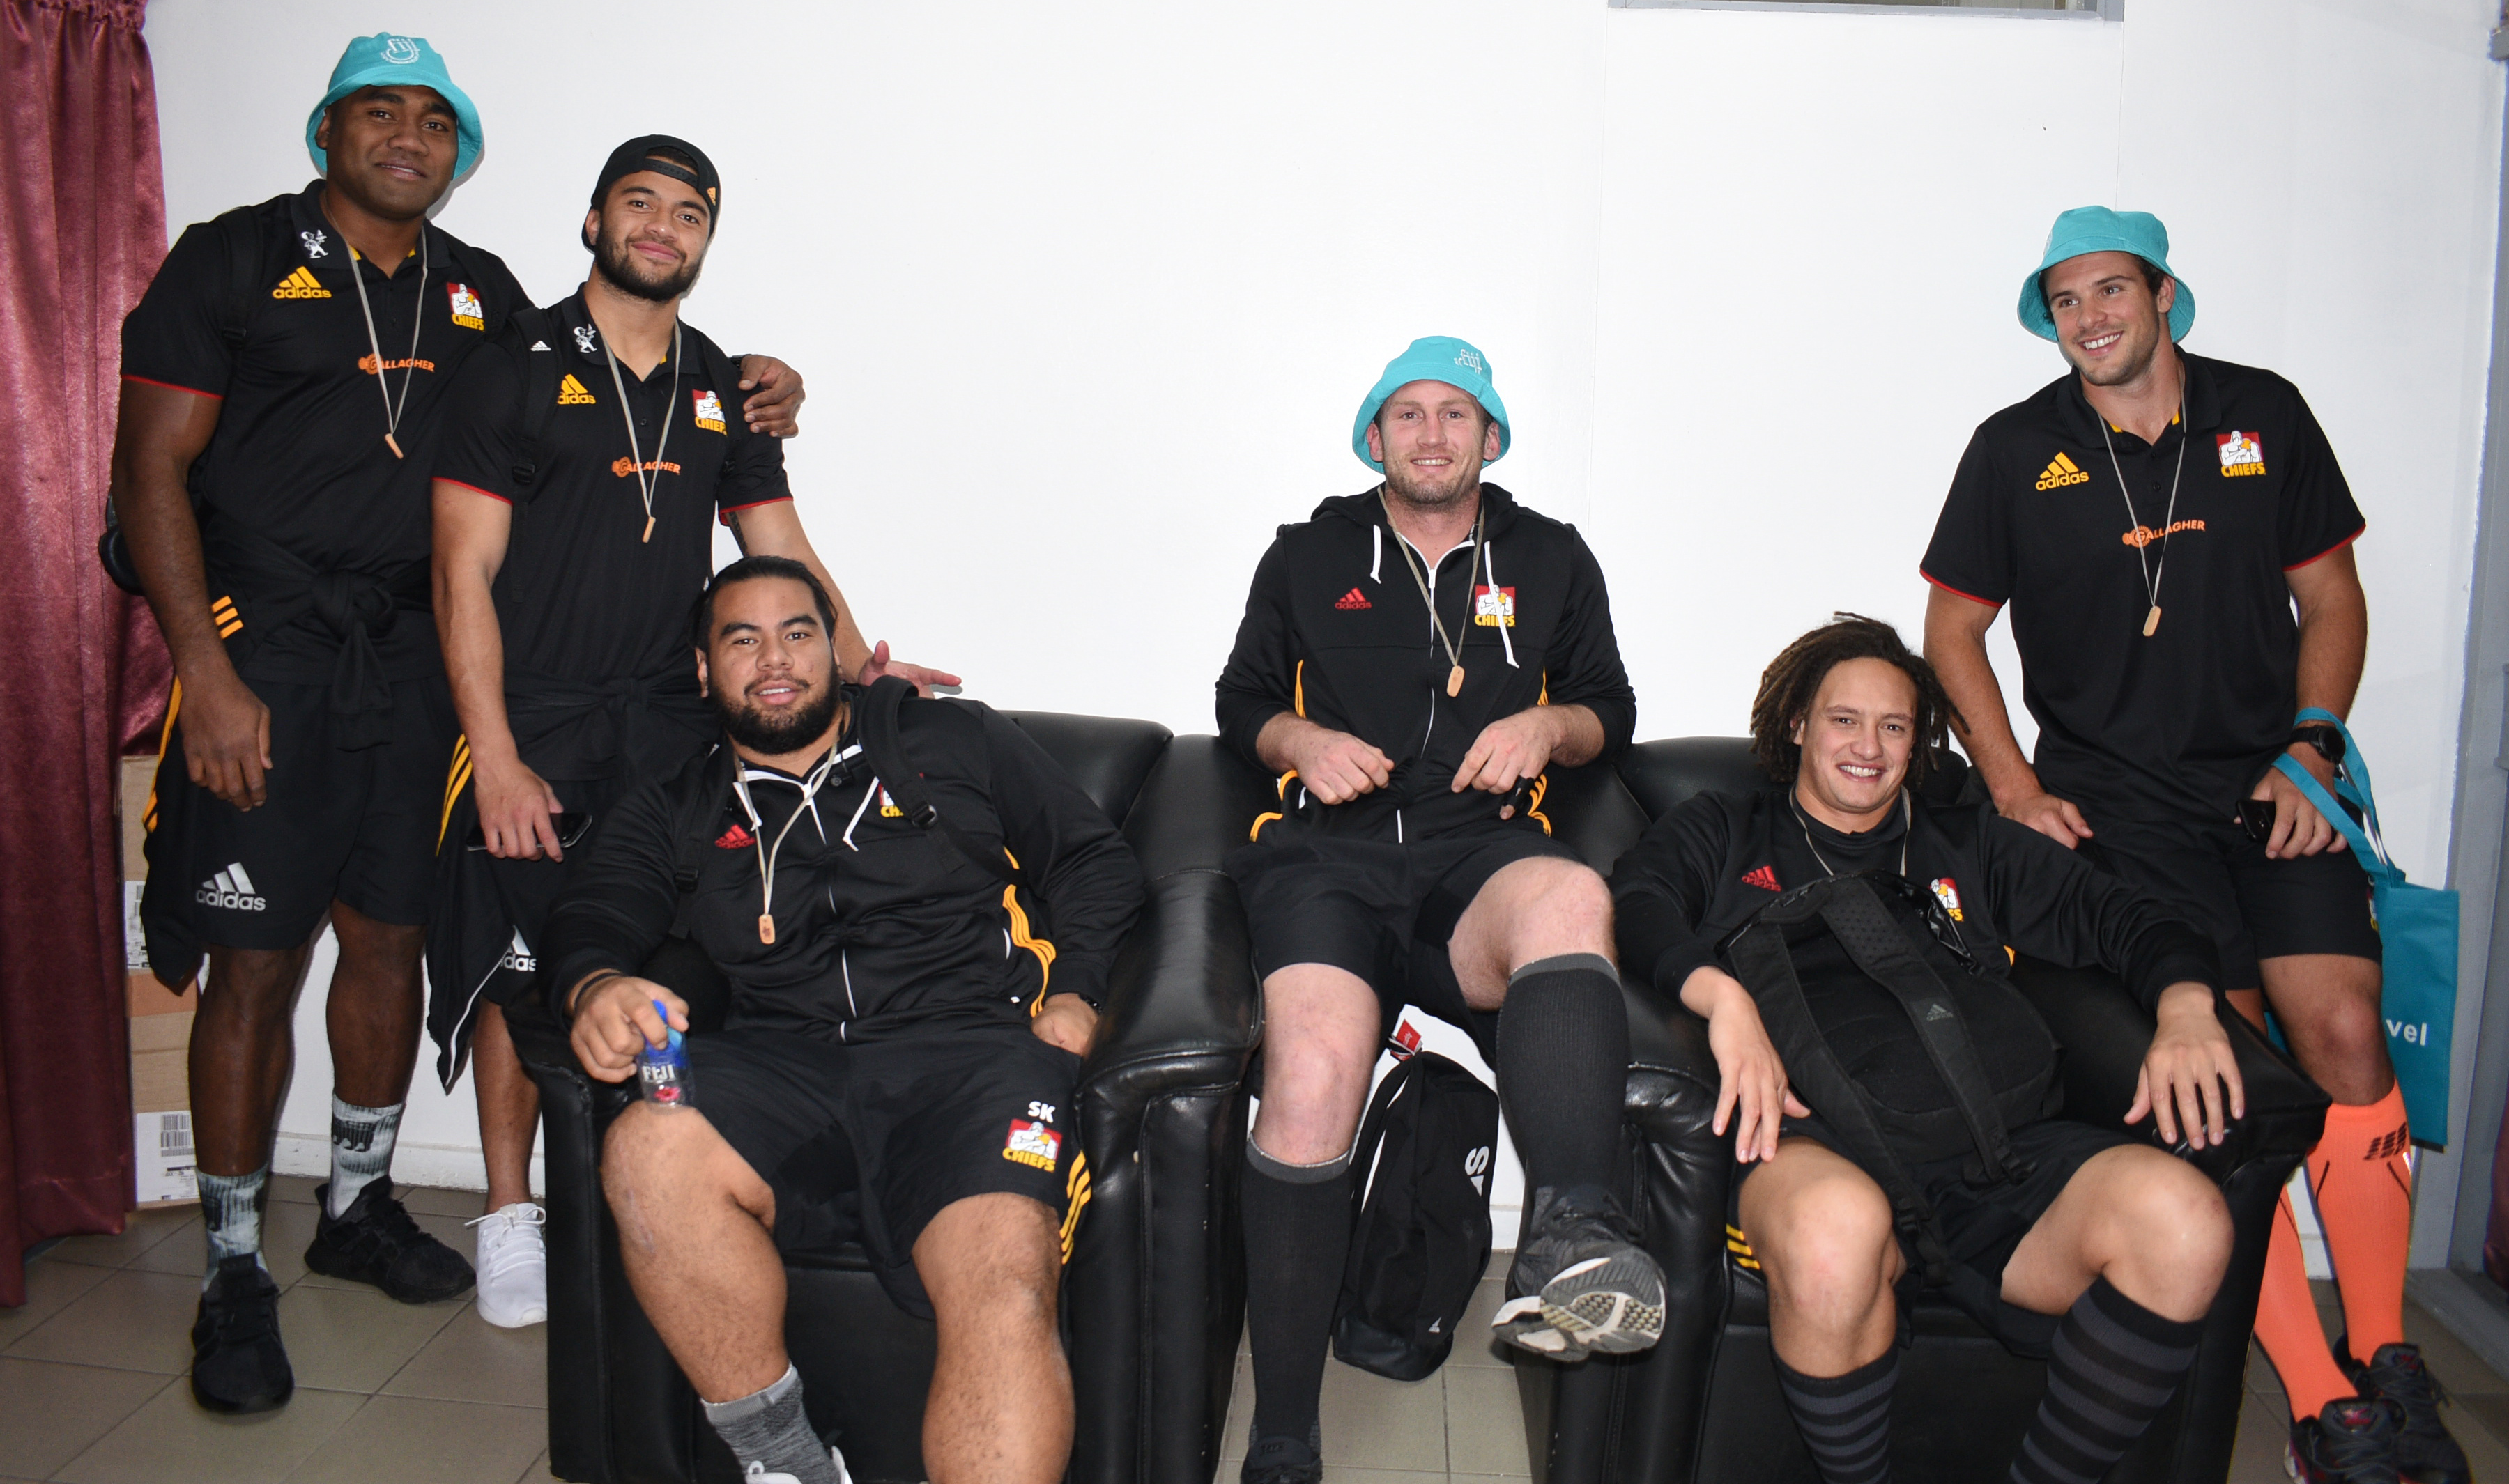 Chiefs rugby players at Nausori International Airport upon arrival on June 27, 2018. Photo: Ronald Kumar.